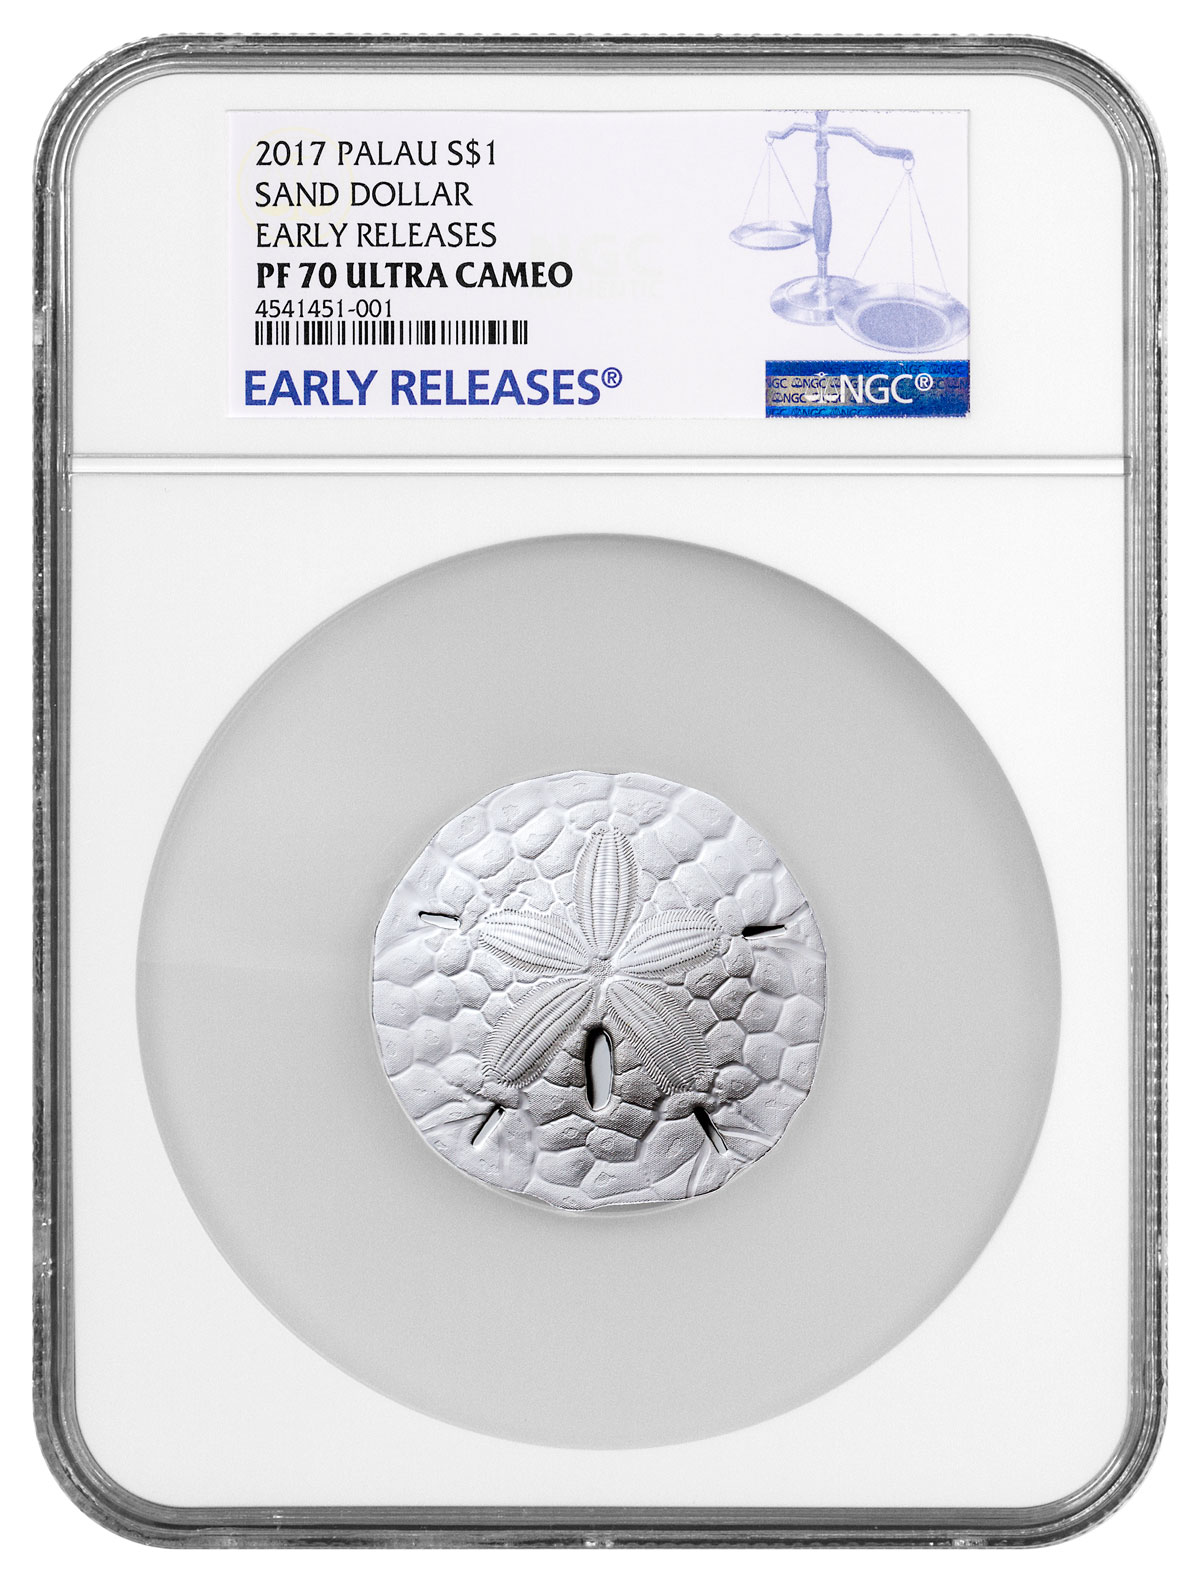 2017 Palau Sand Dollar 1 oz Silver Proof $1 Coin NGC PF70 UC ER